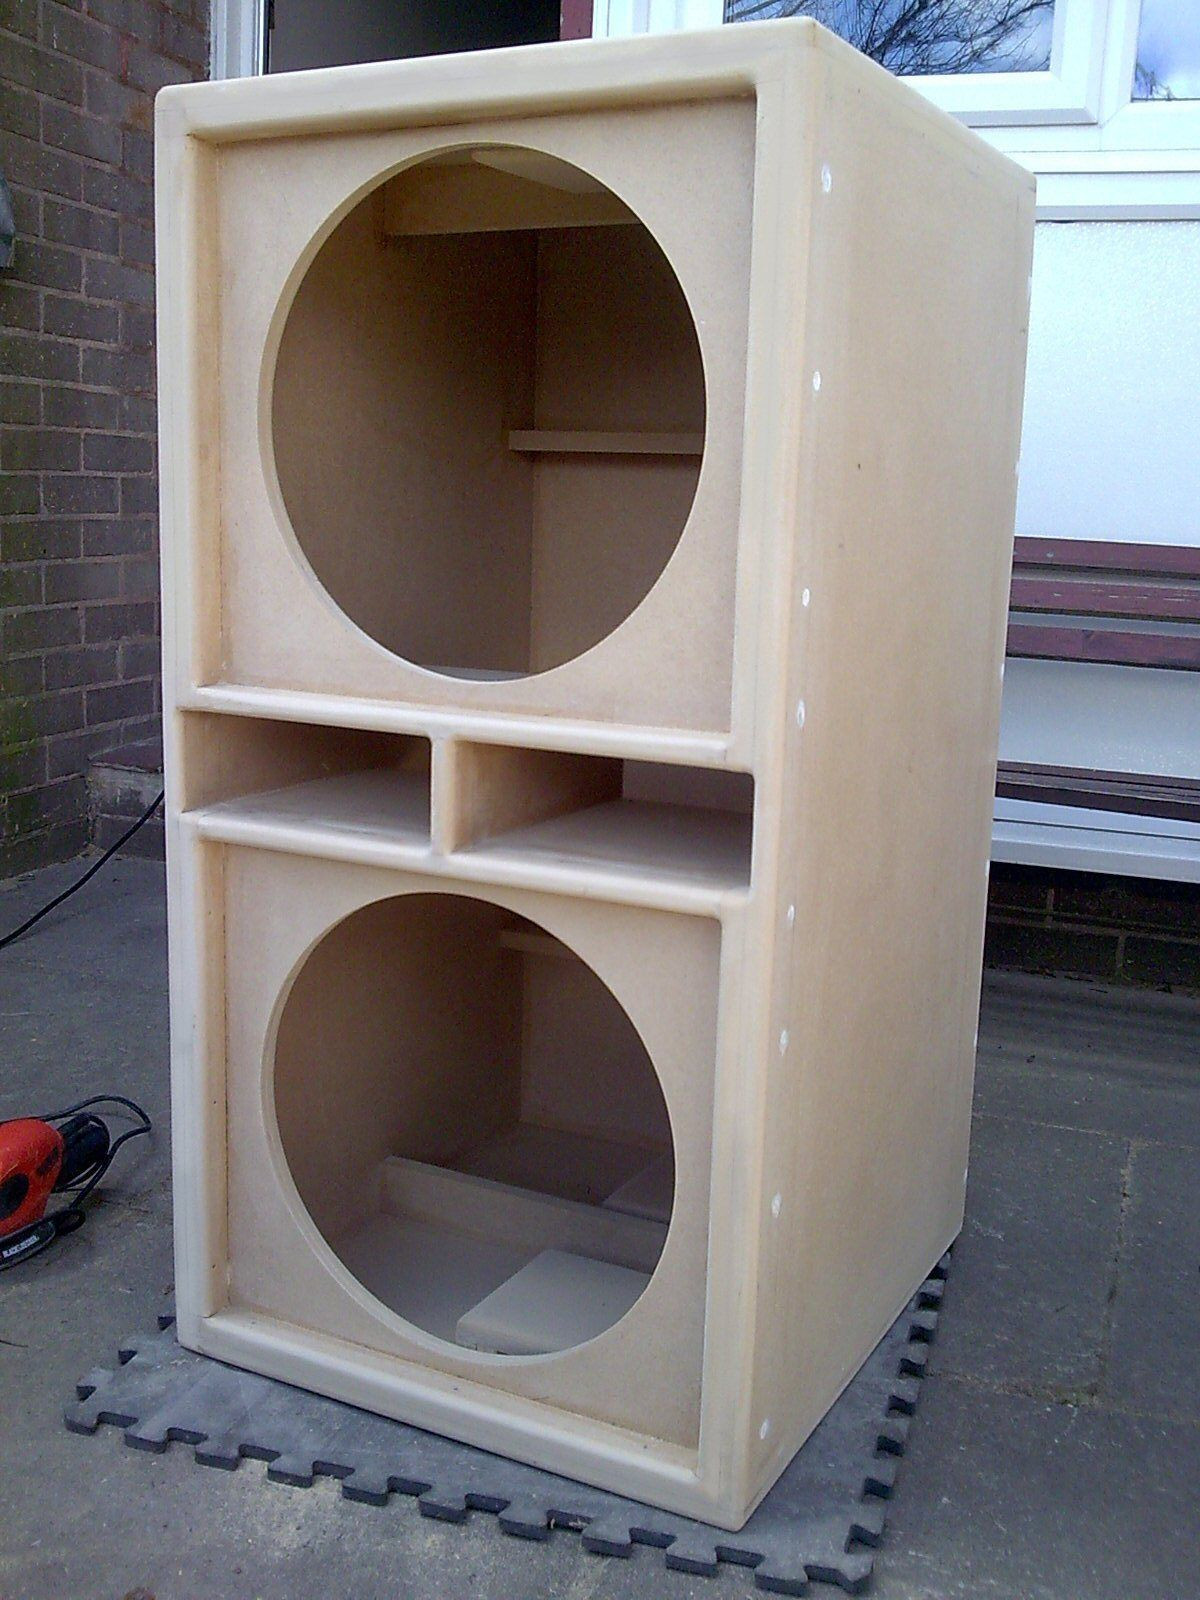 DIY Sub Boxes  Pin by Benjamin Ortizrivera on sound system